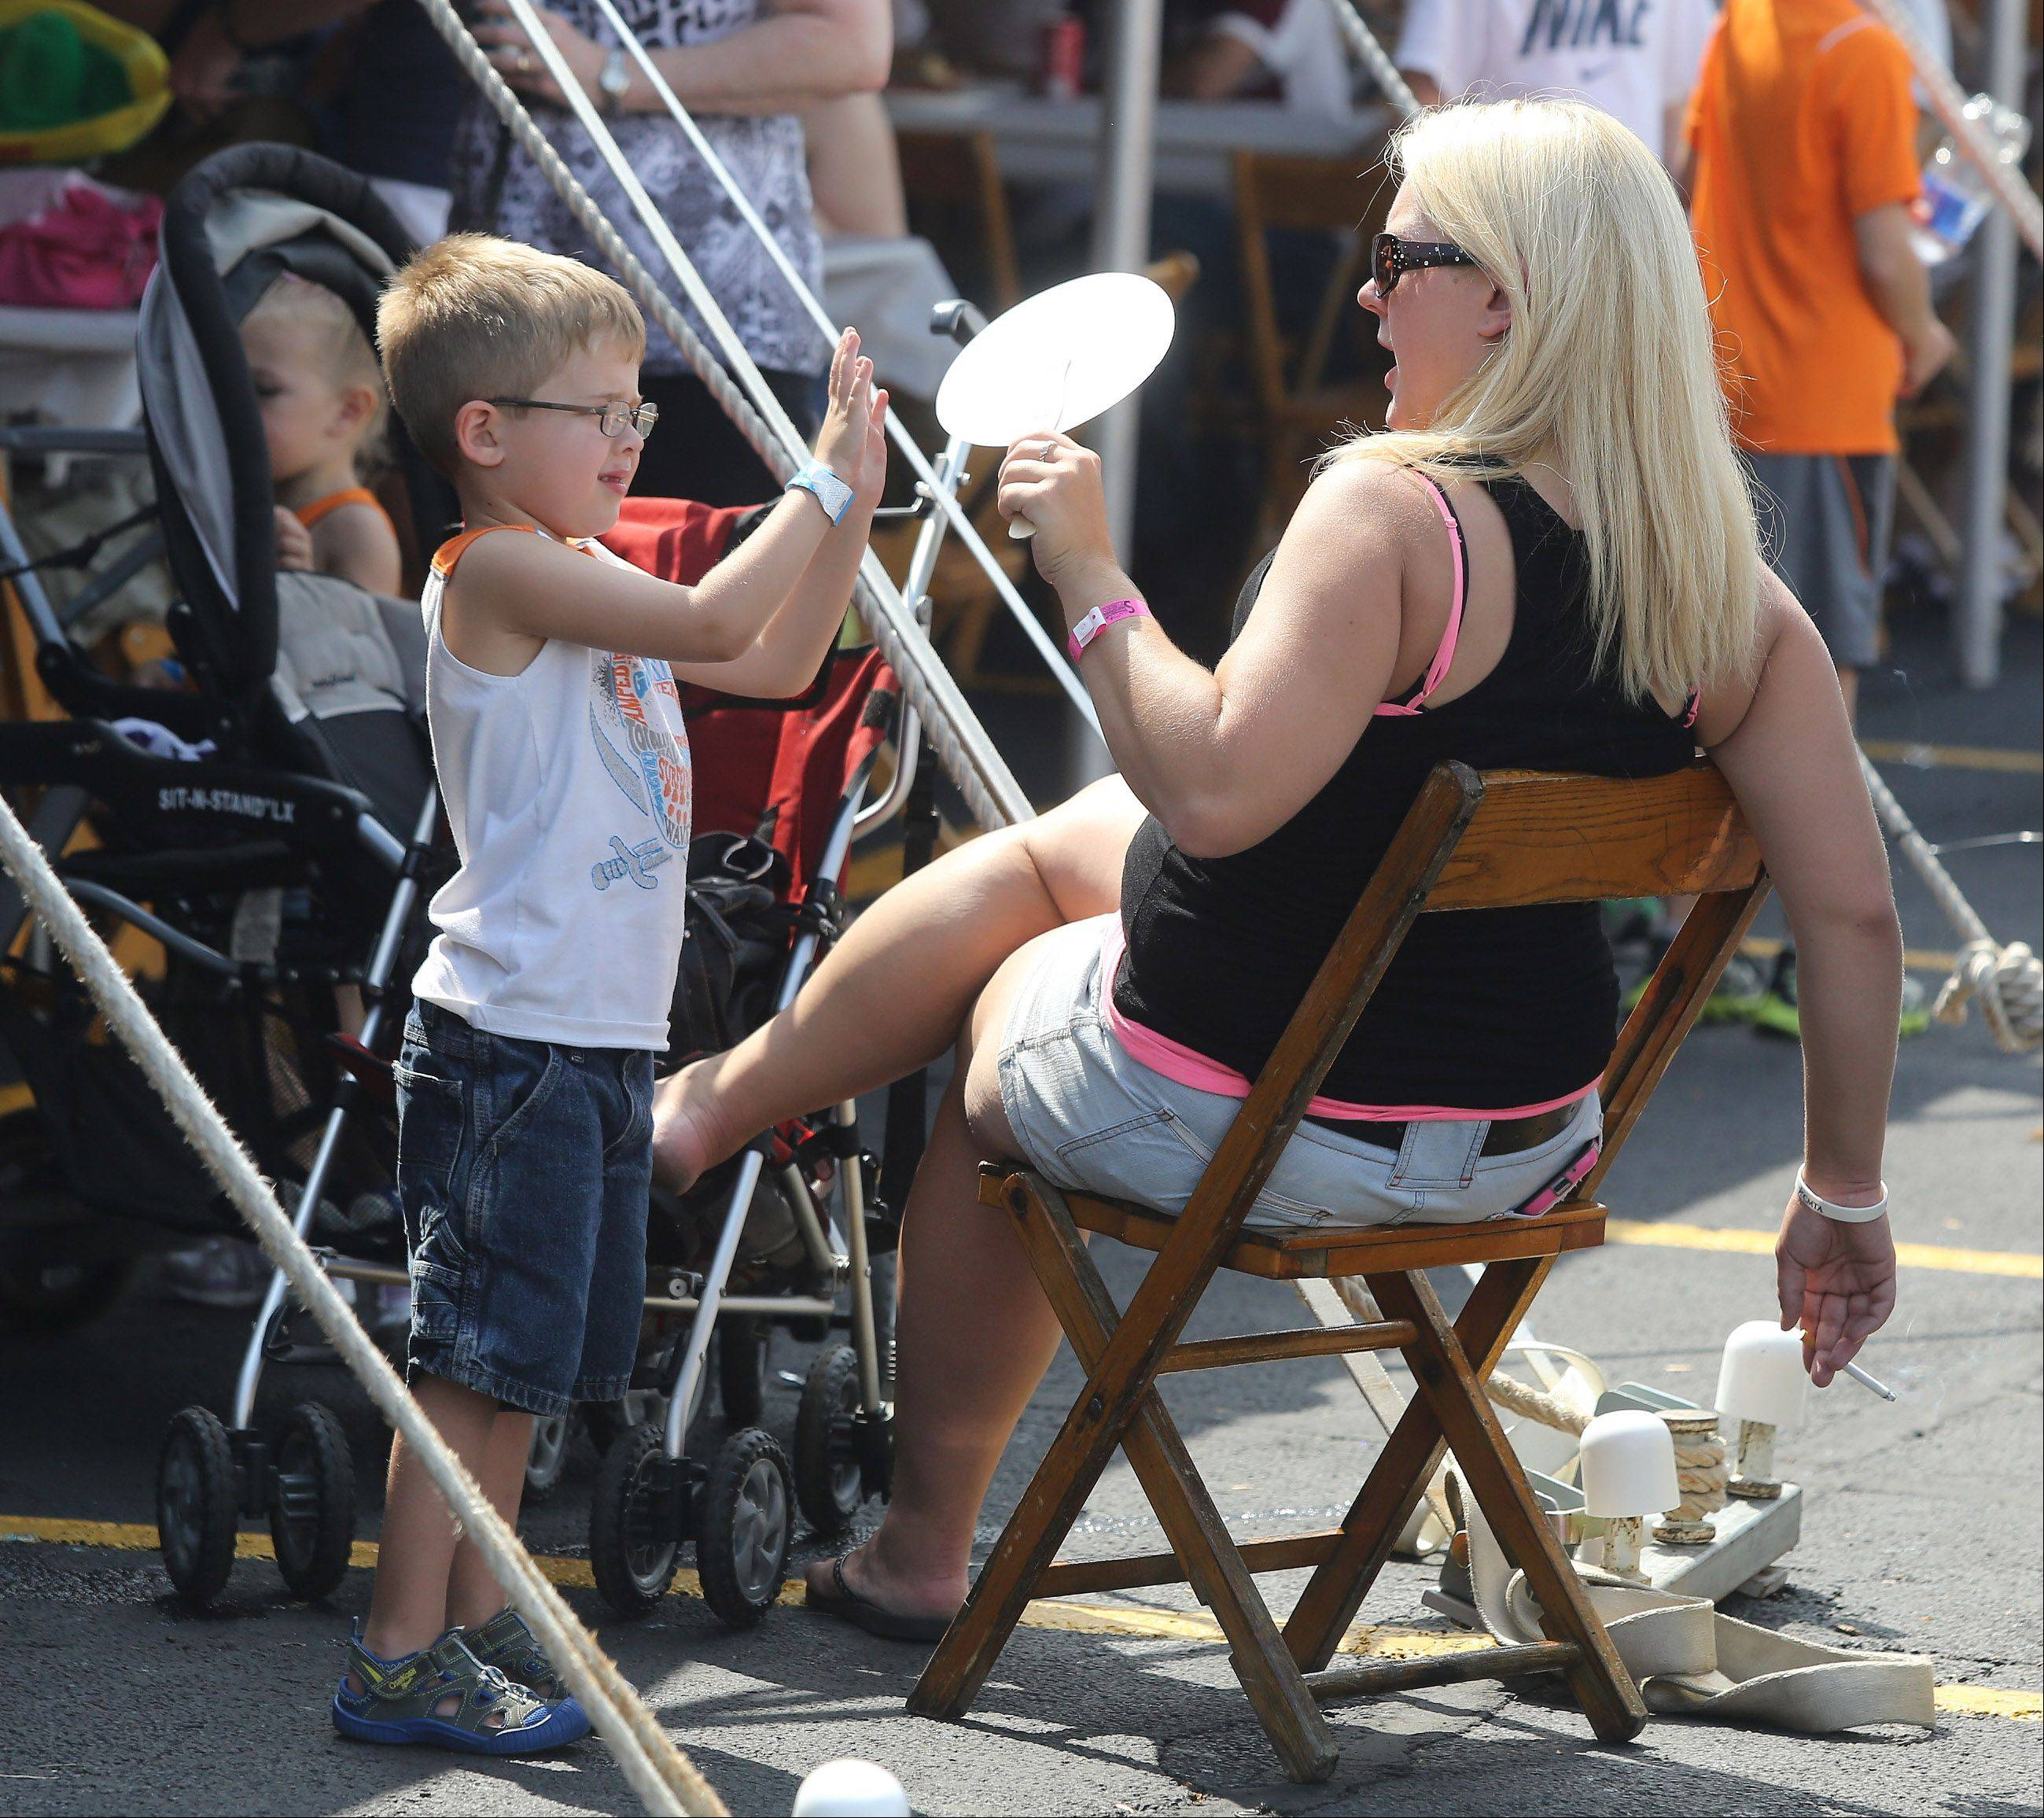 Schaumburg resident Ashley Anderson fans her son Connor, 4, as they eat at the food tent during the second day of Schaumburg Septemberfest Sunday. The festival featured food, carnival, games and entertainment.